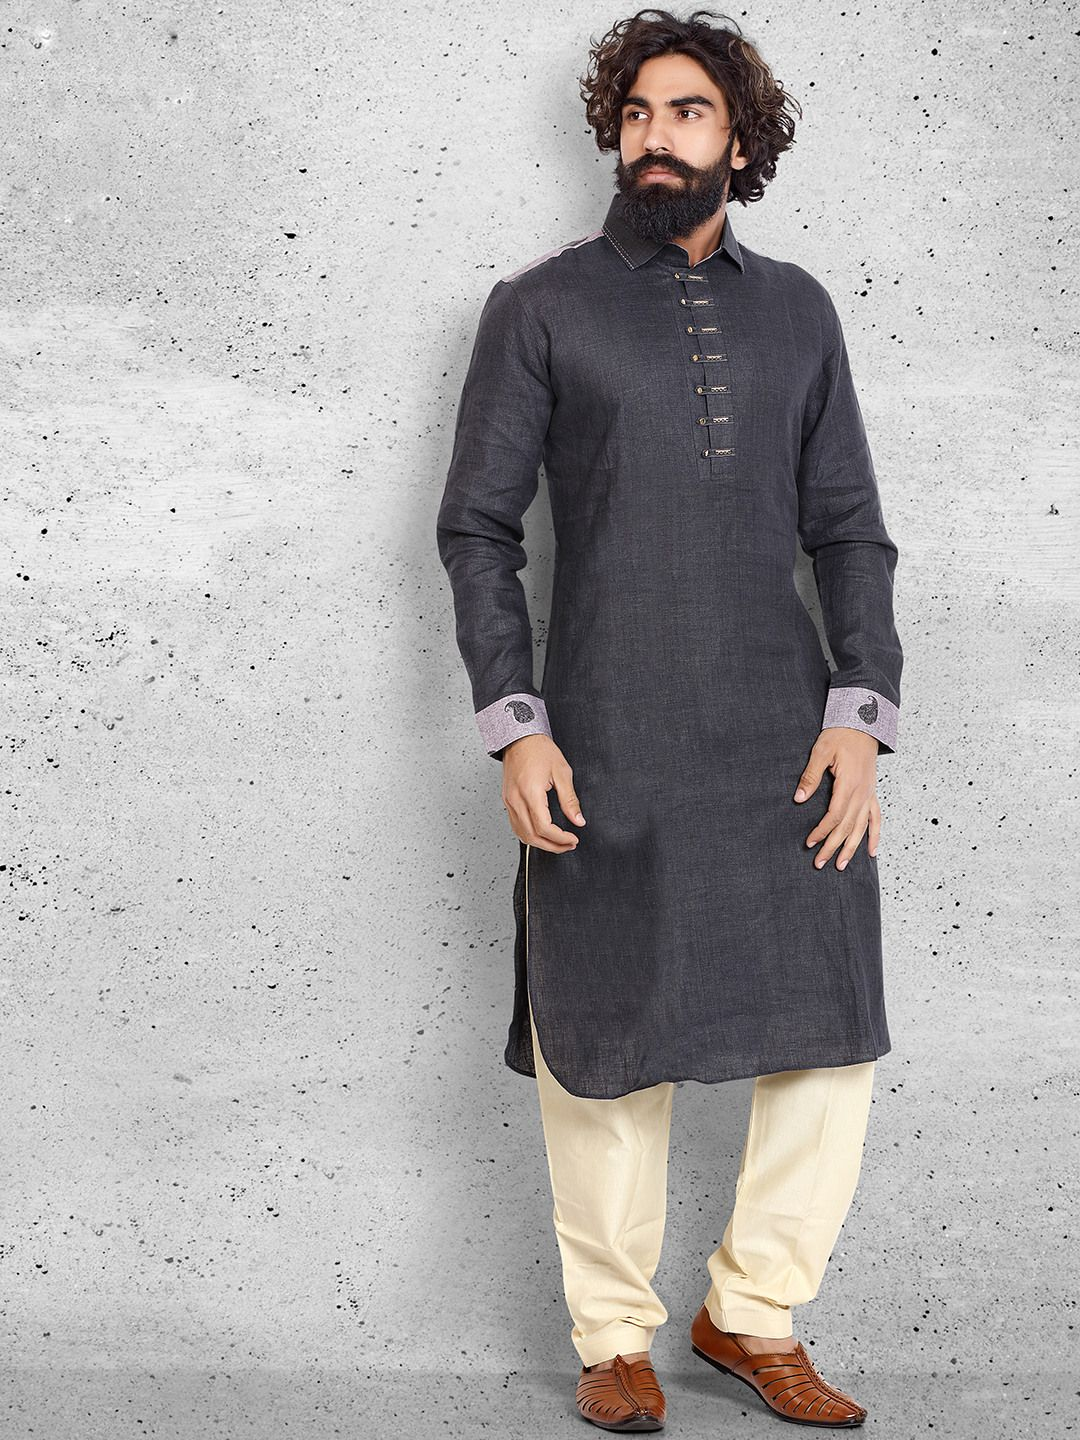 Groom kurta suits black wedding kurta designs asifa and nabeel men - Shop Linen Cotton Black Pathani Suit Online From India